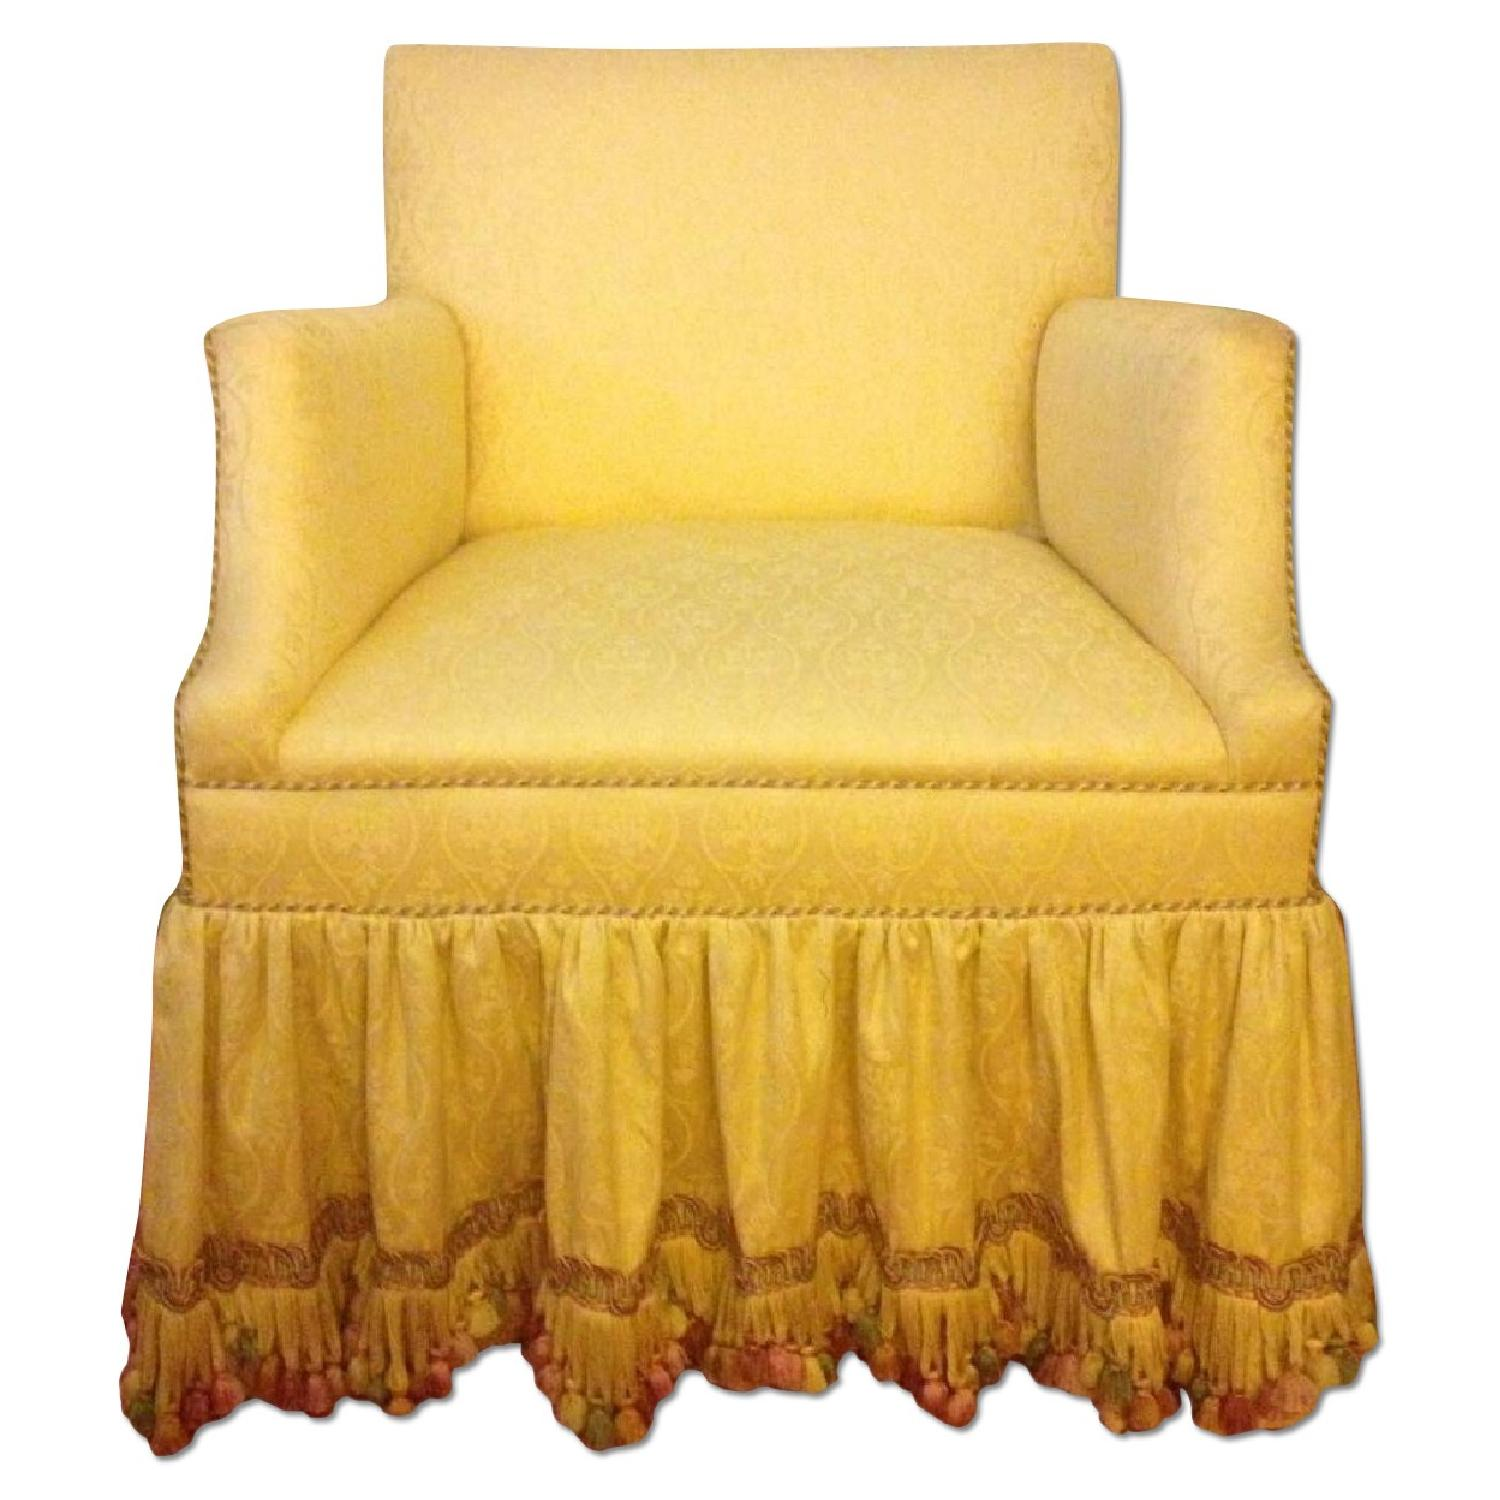 Upholstered Armchair - image-0